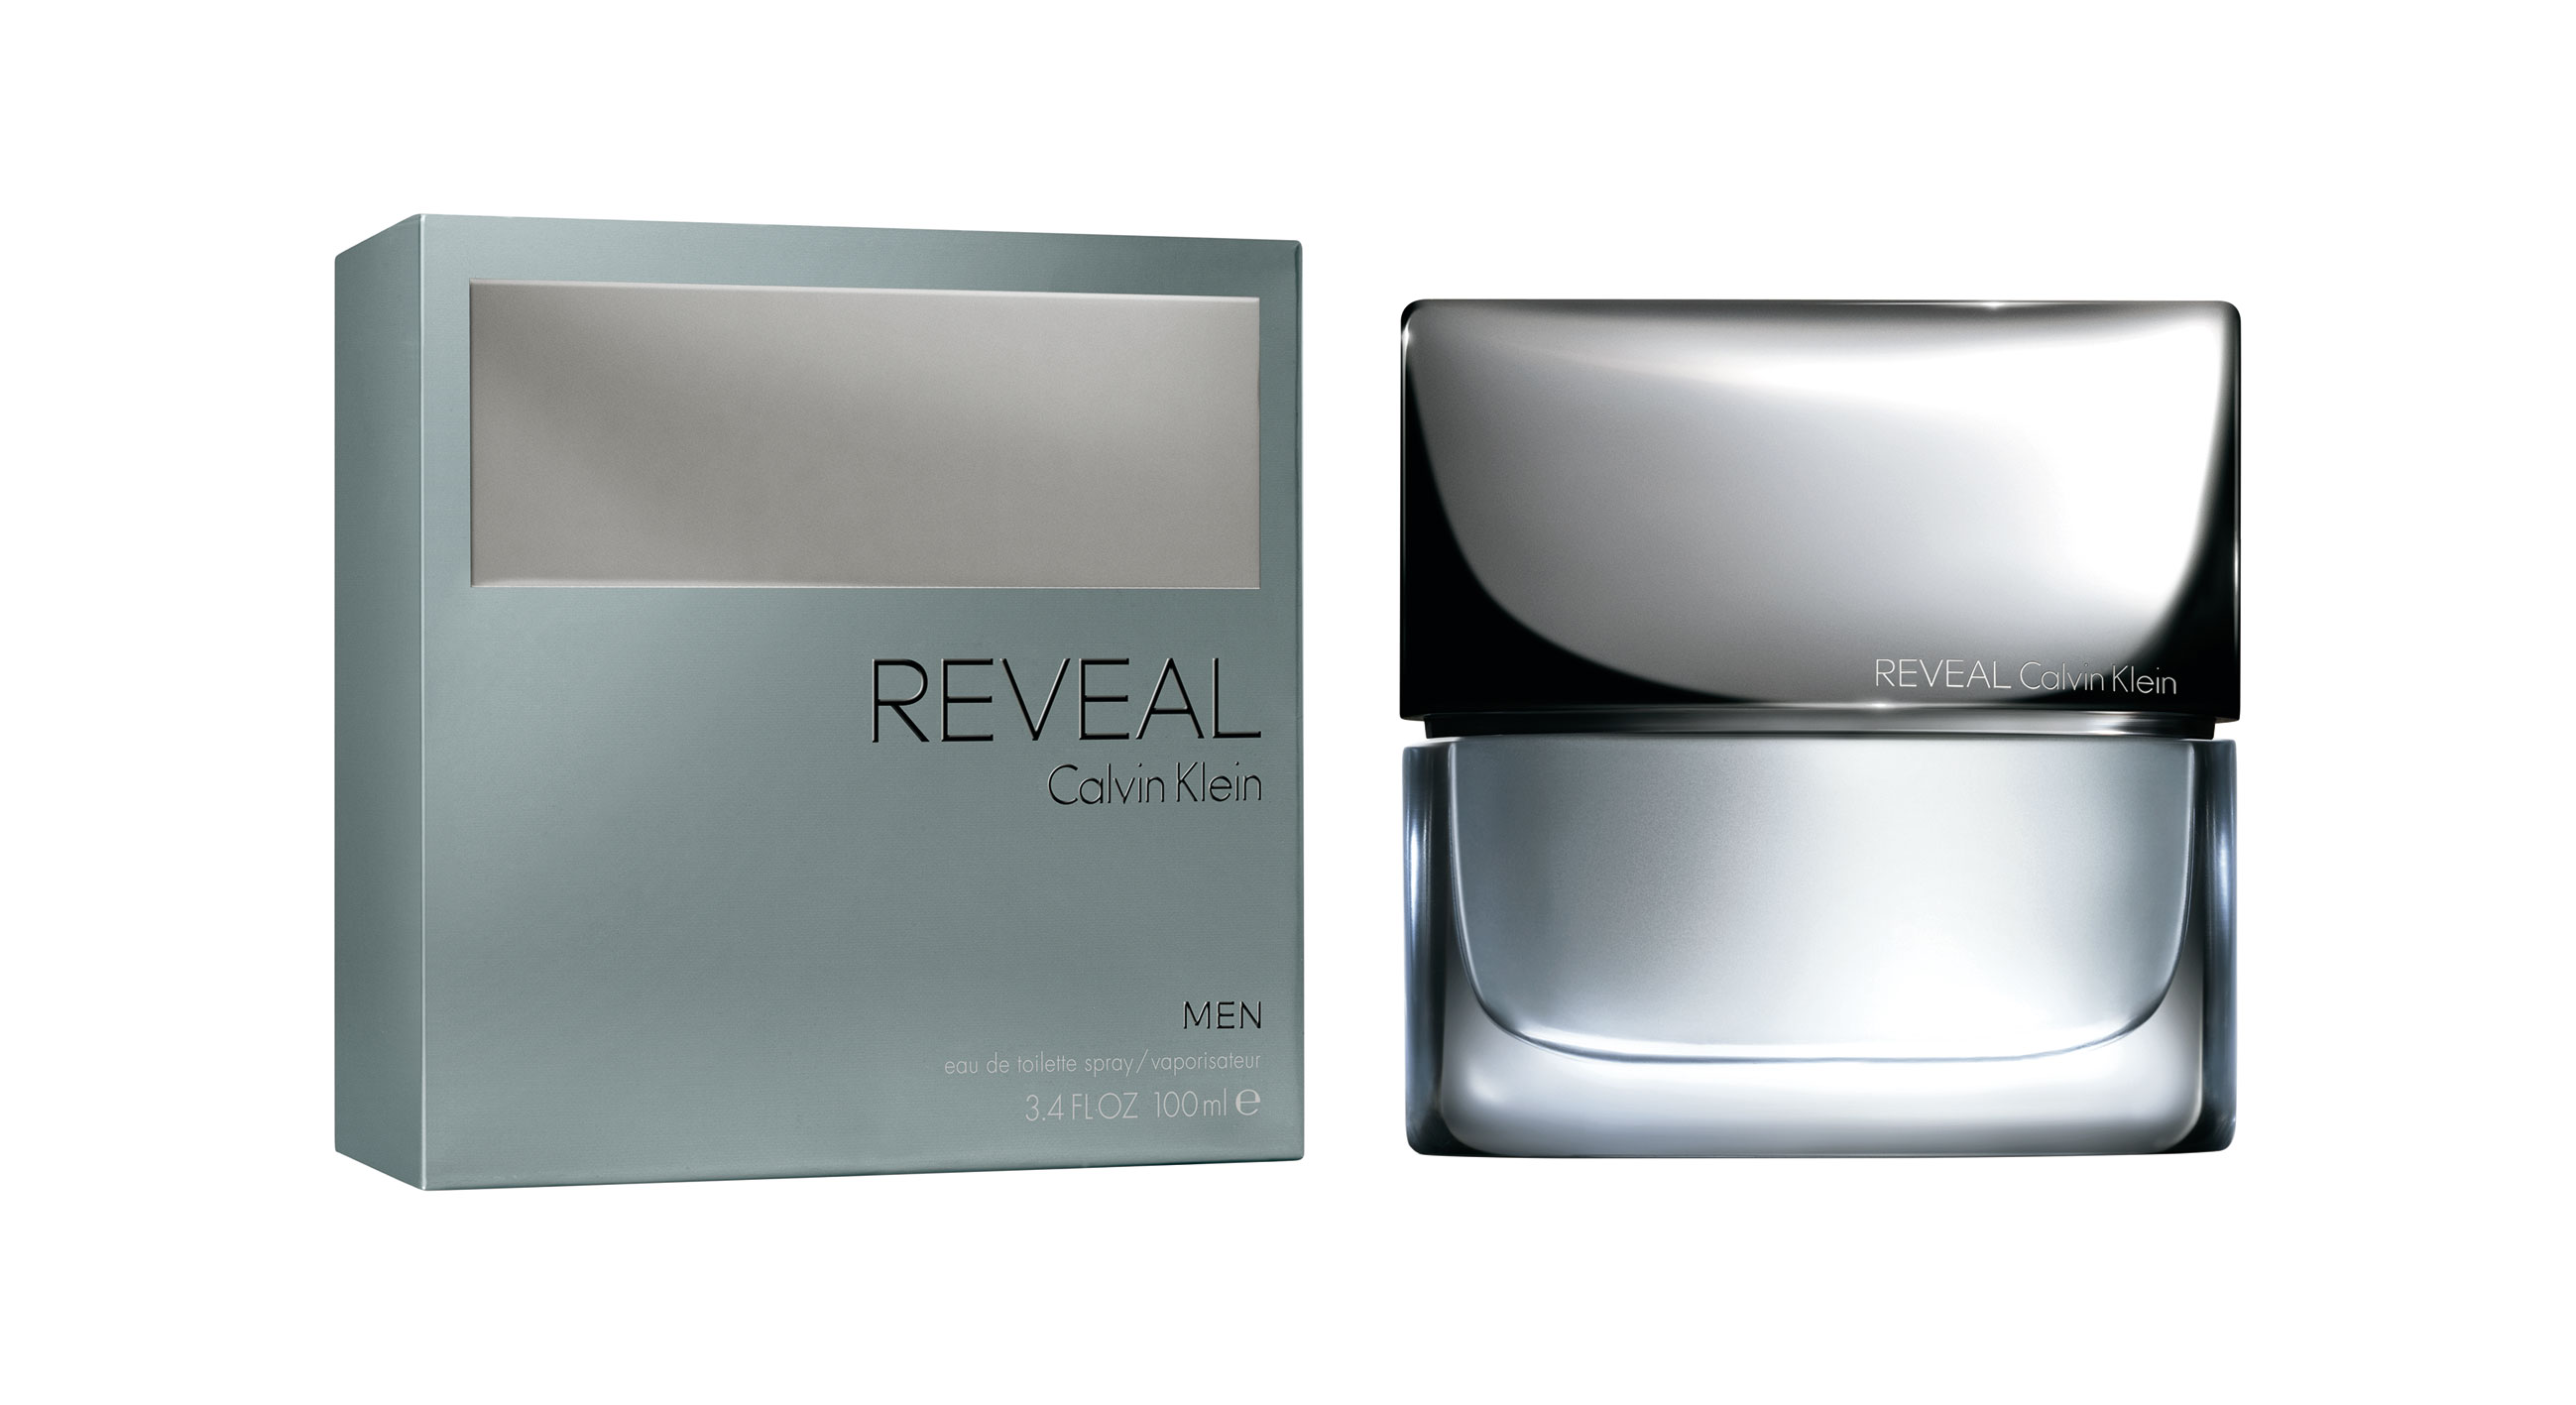 Calvin Klein, Reveal Men (EDT 100 ml, PVPR 74,50 €).